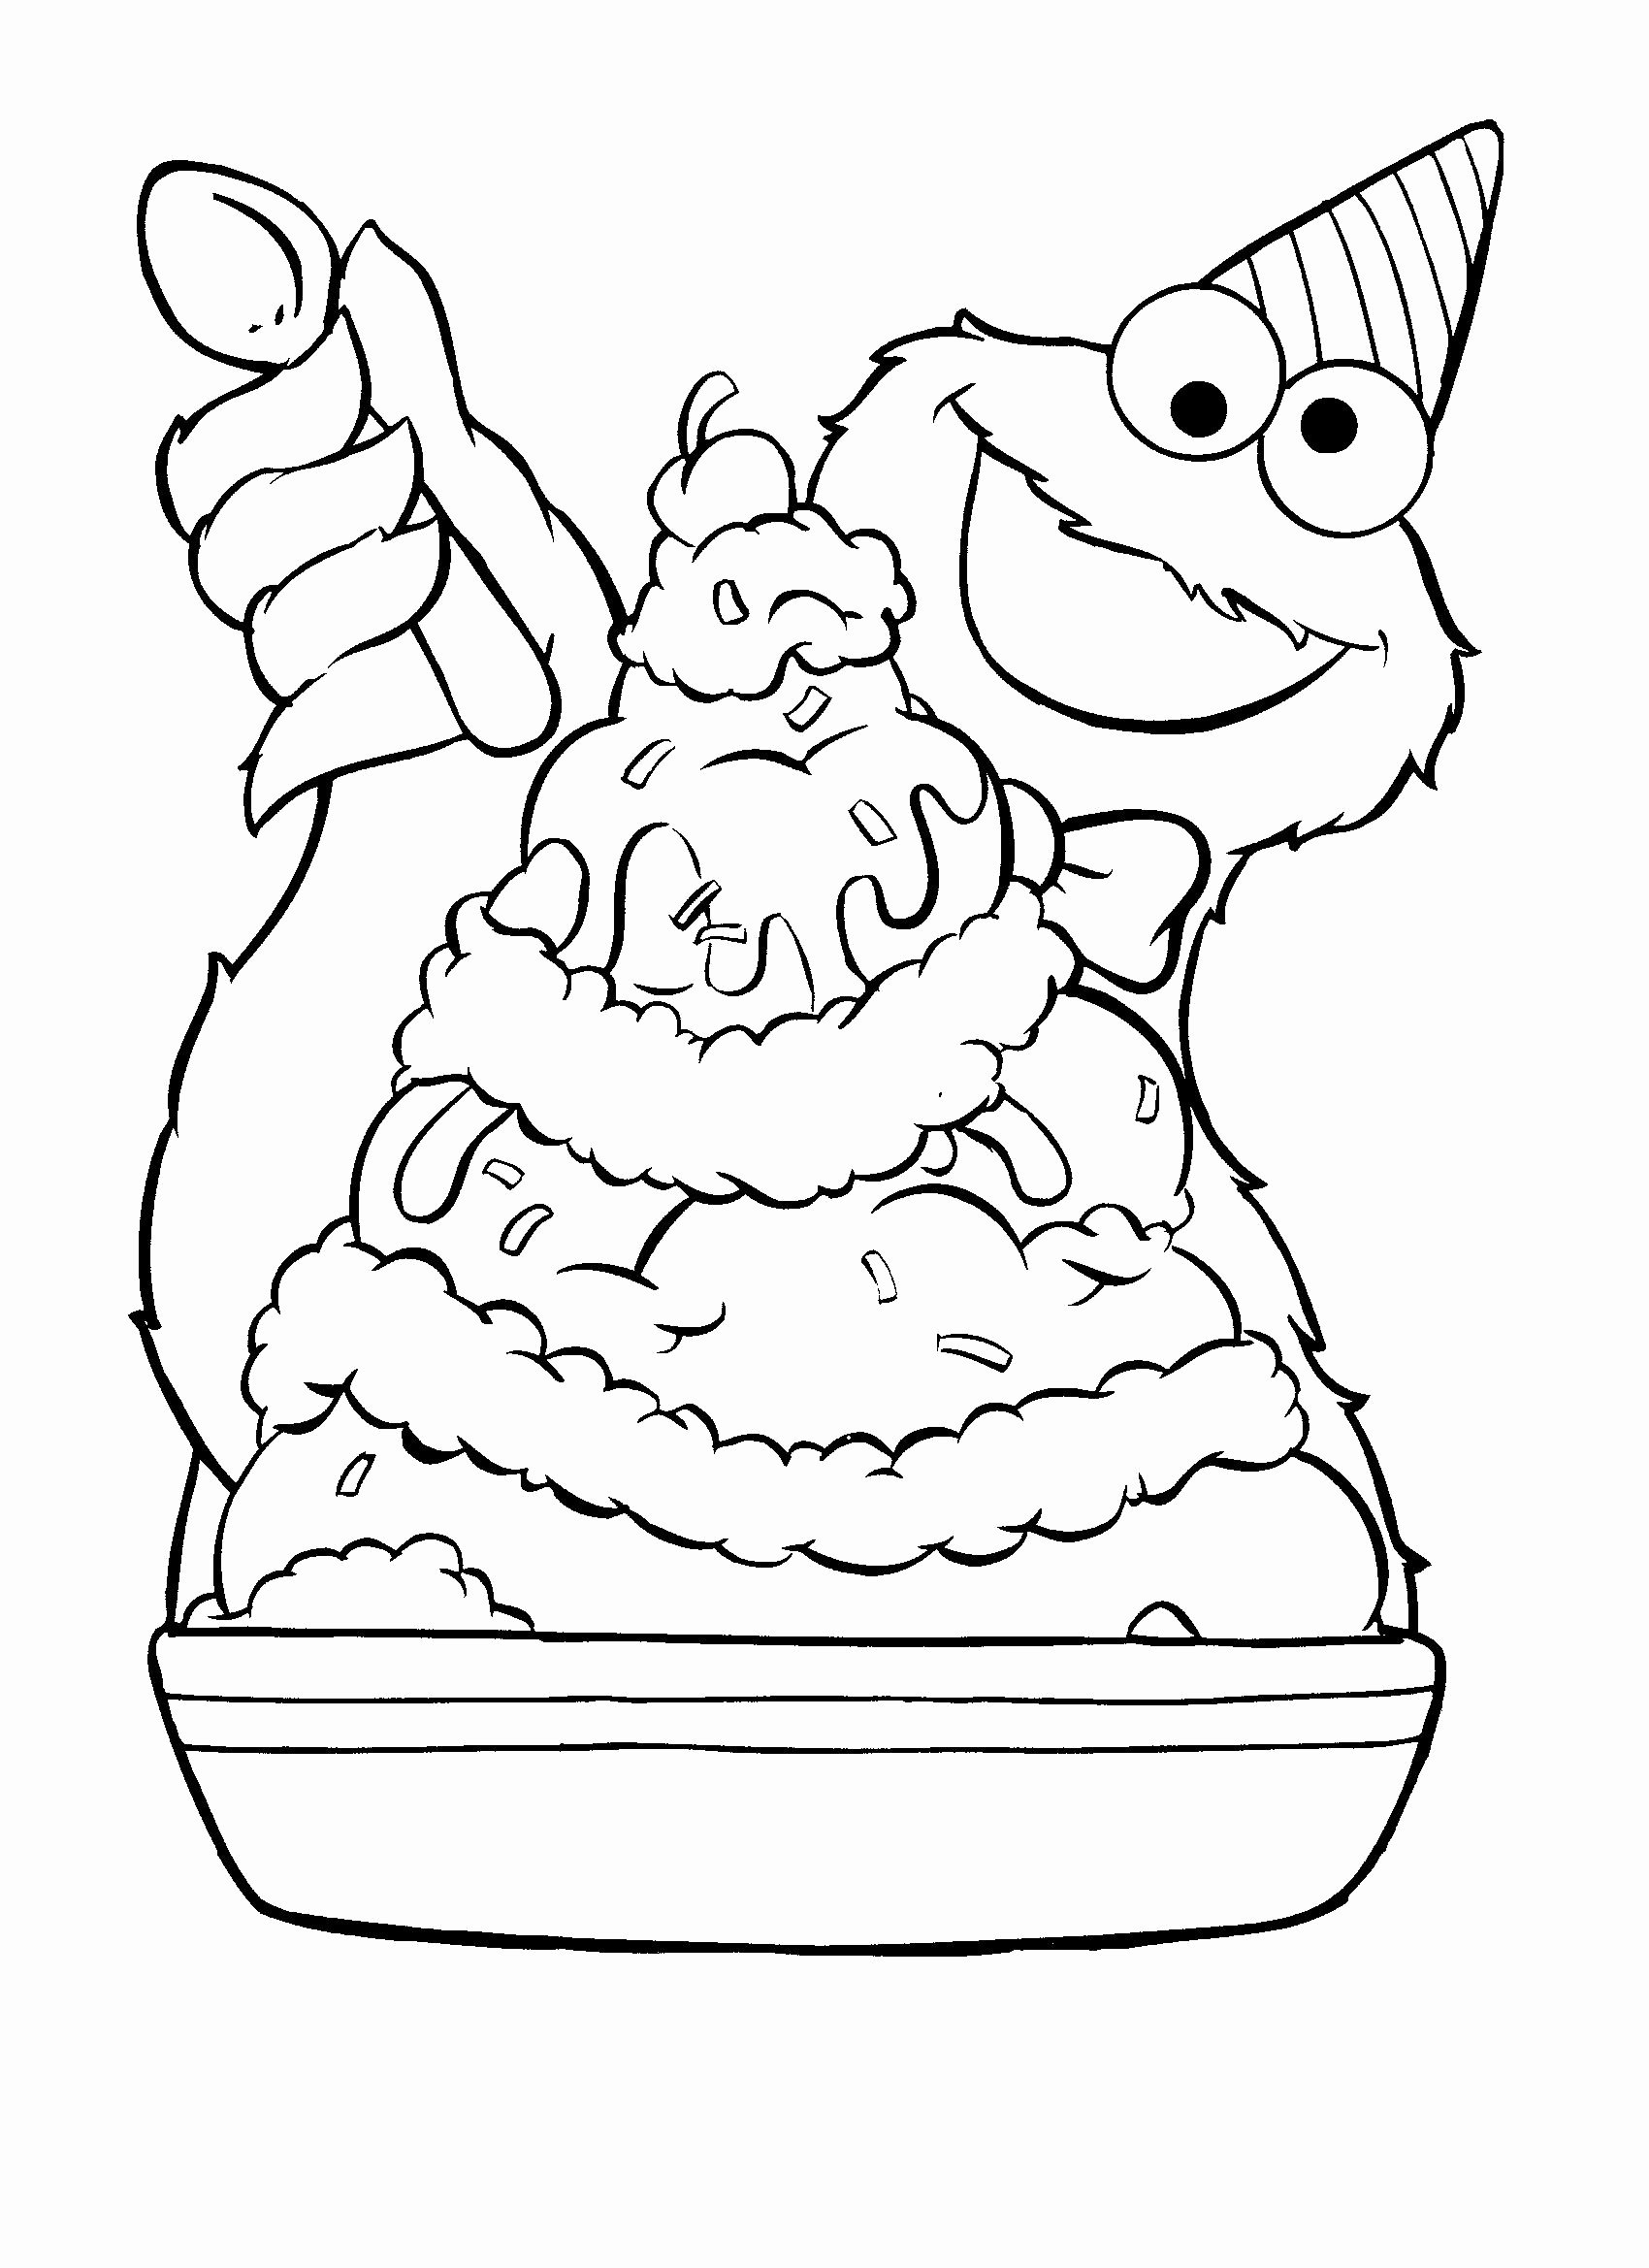 Sesame Street Sign Coloring Page Coloring Ideas Marveloussame Street Coloring Sheets Photo